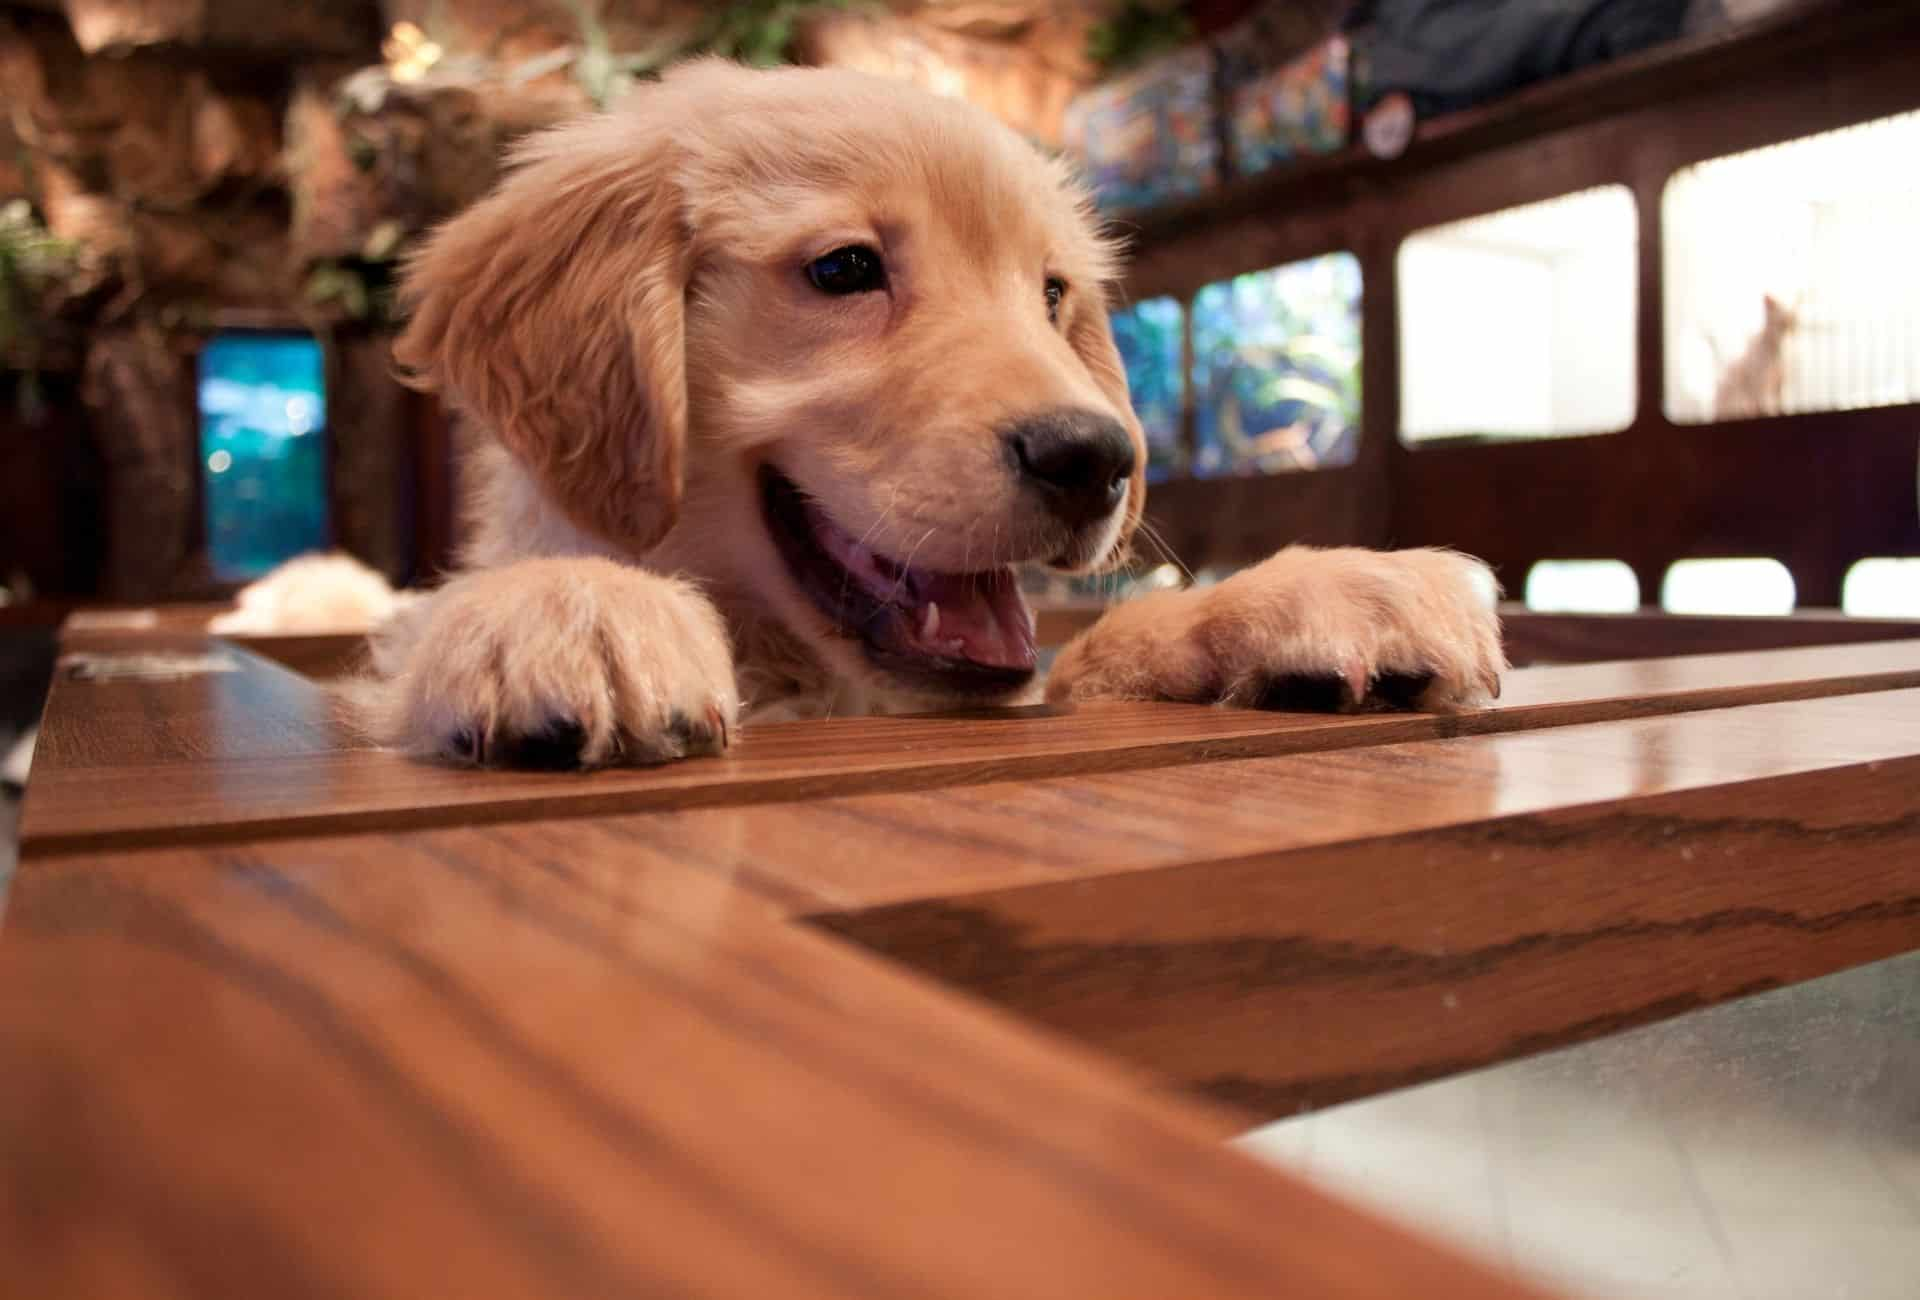 A cute puppy is leaning with his paws on the countertop inside a store or restaurant.